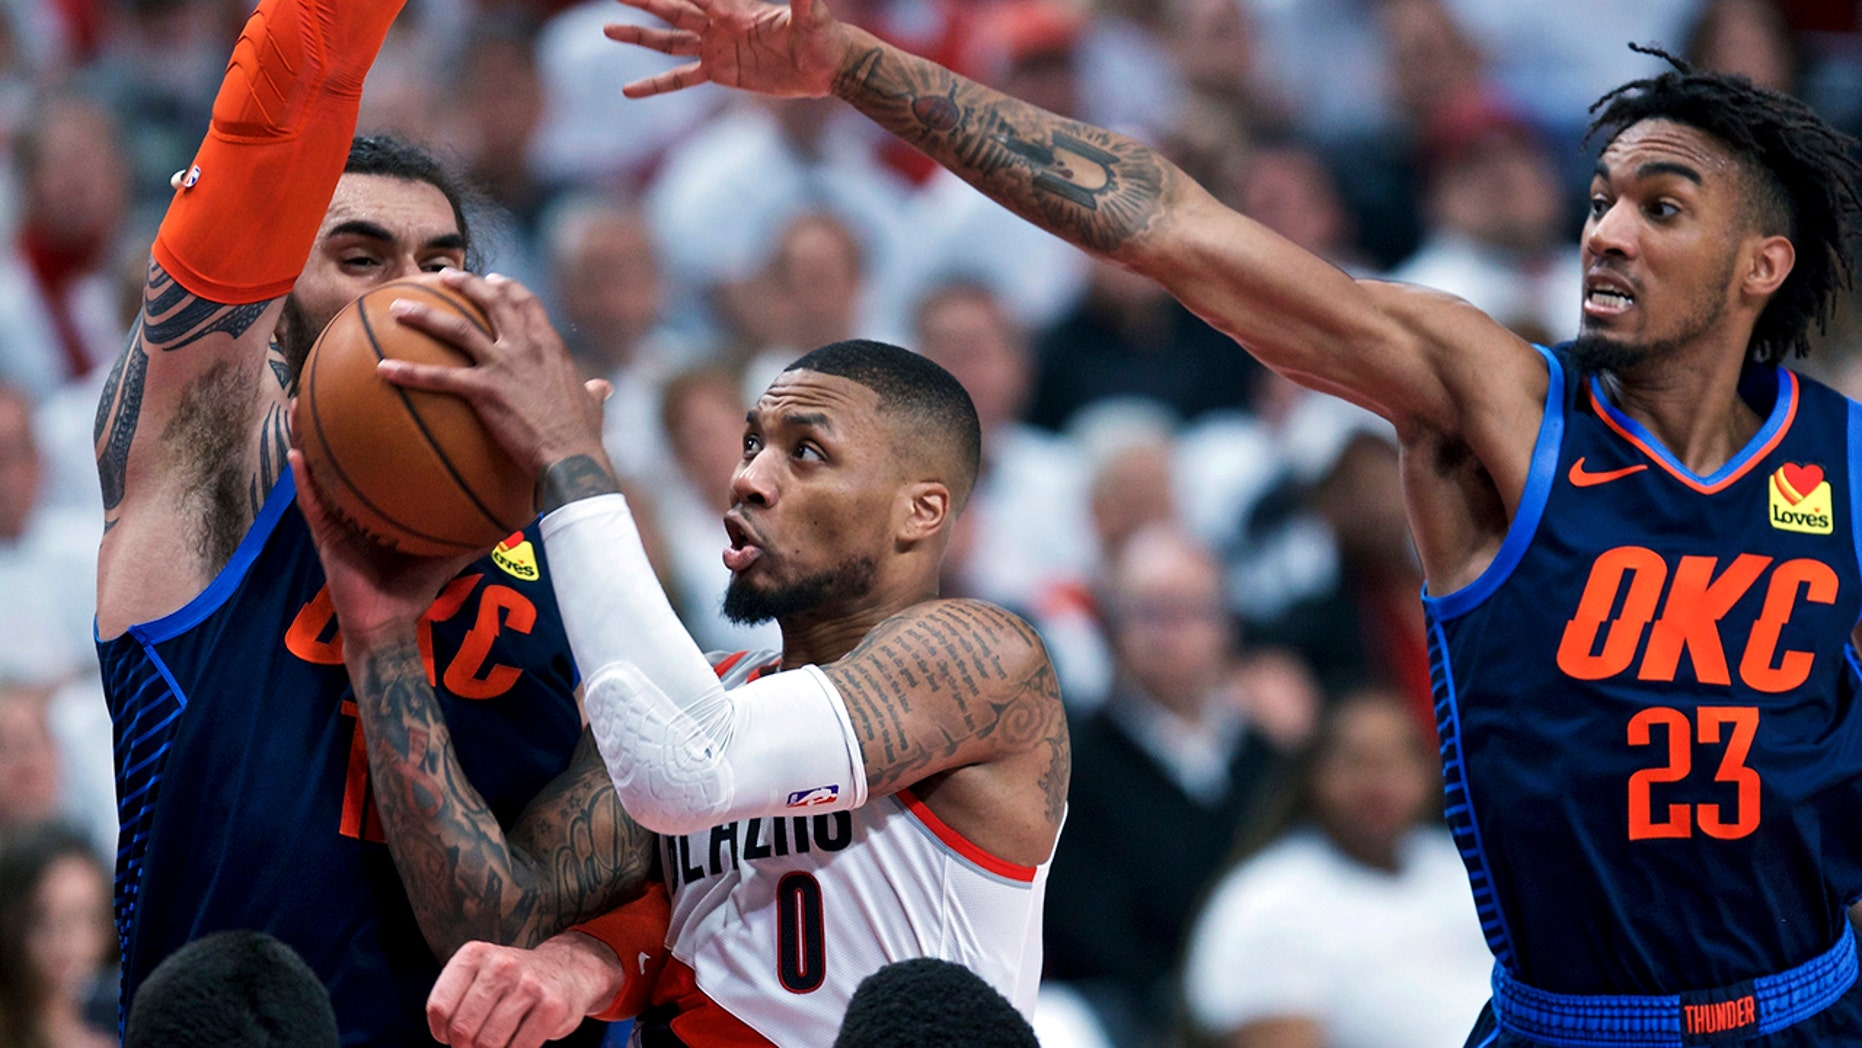 Portland Trail Blazers: 3 takeaways from unforgettable Game 5 vs. Thunder